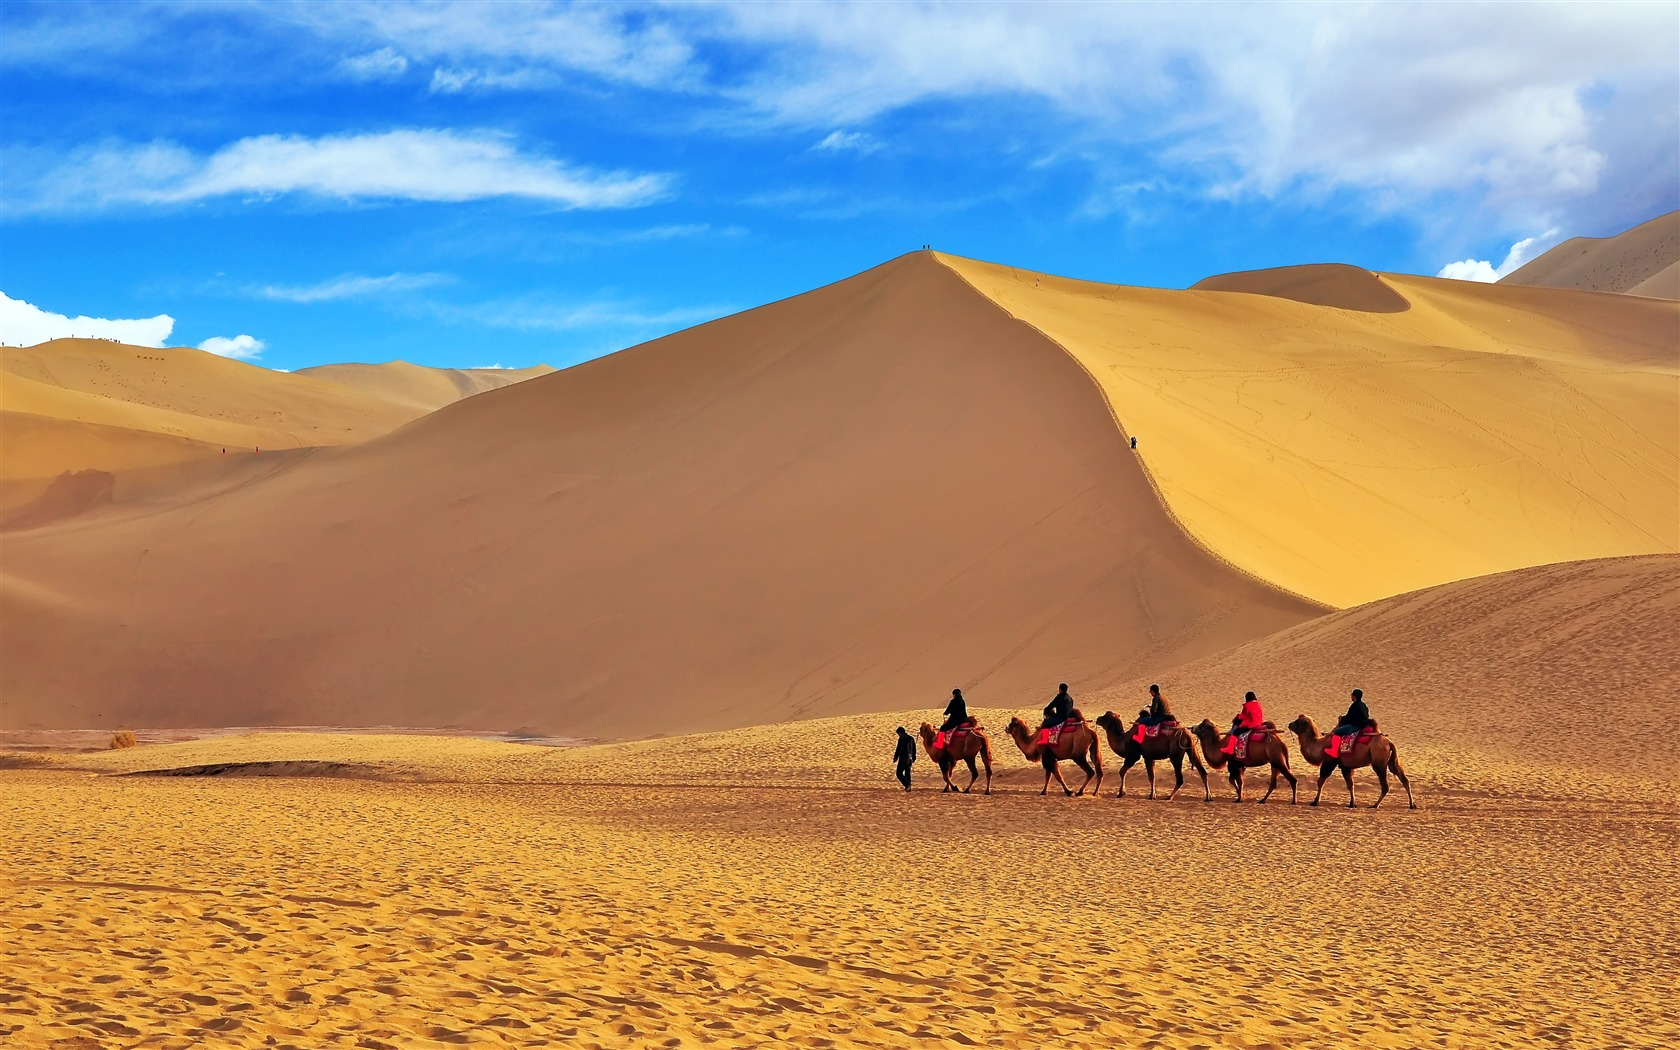 How to use bitcoin on silk road